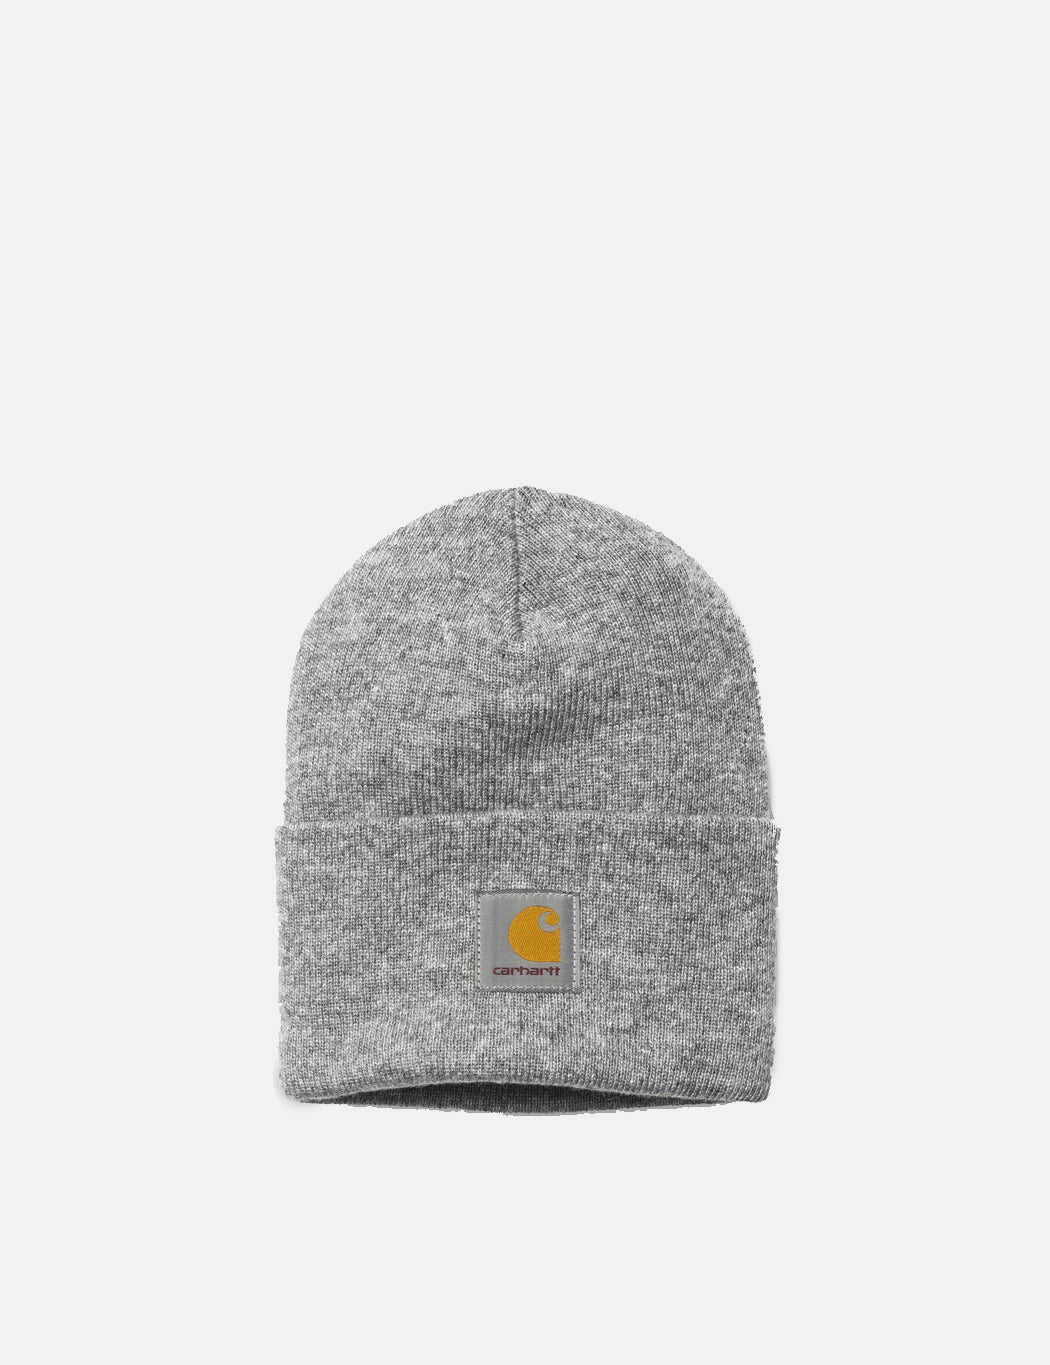 71b10f85eb445 Carhartt Watch Beanie Hat - Grey Heather